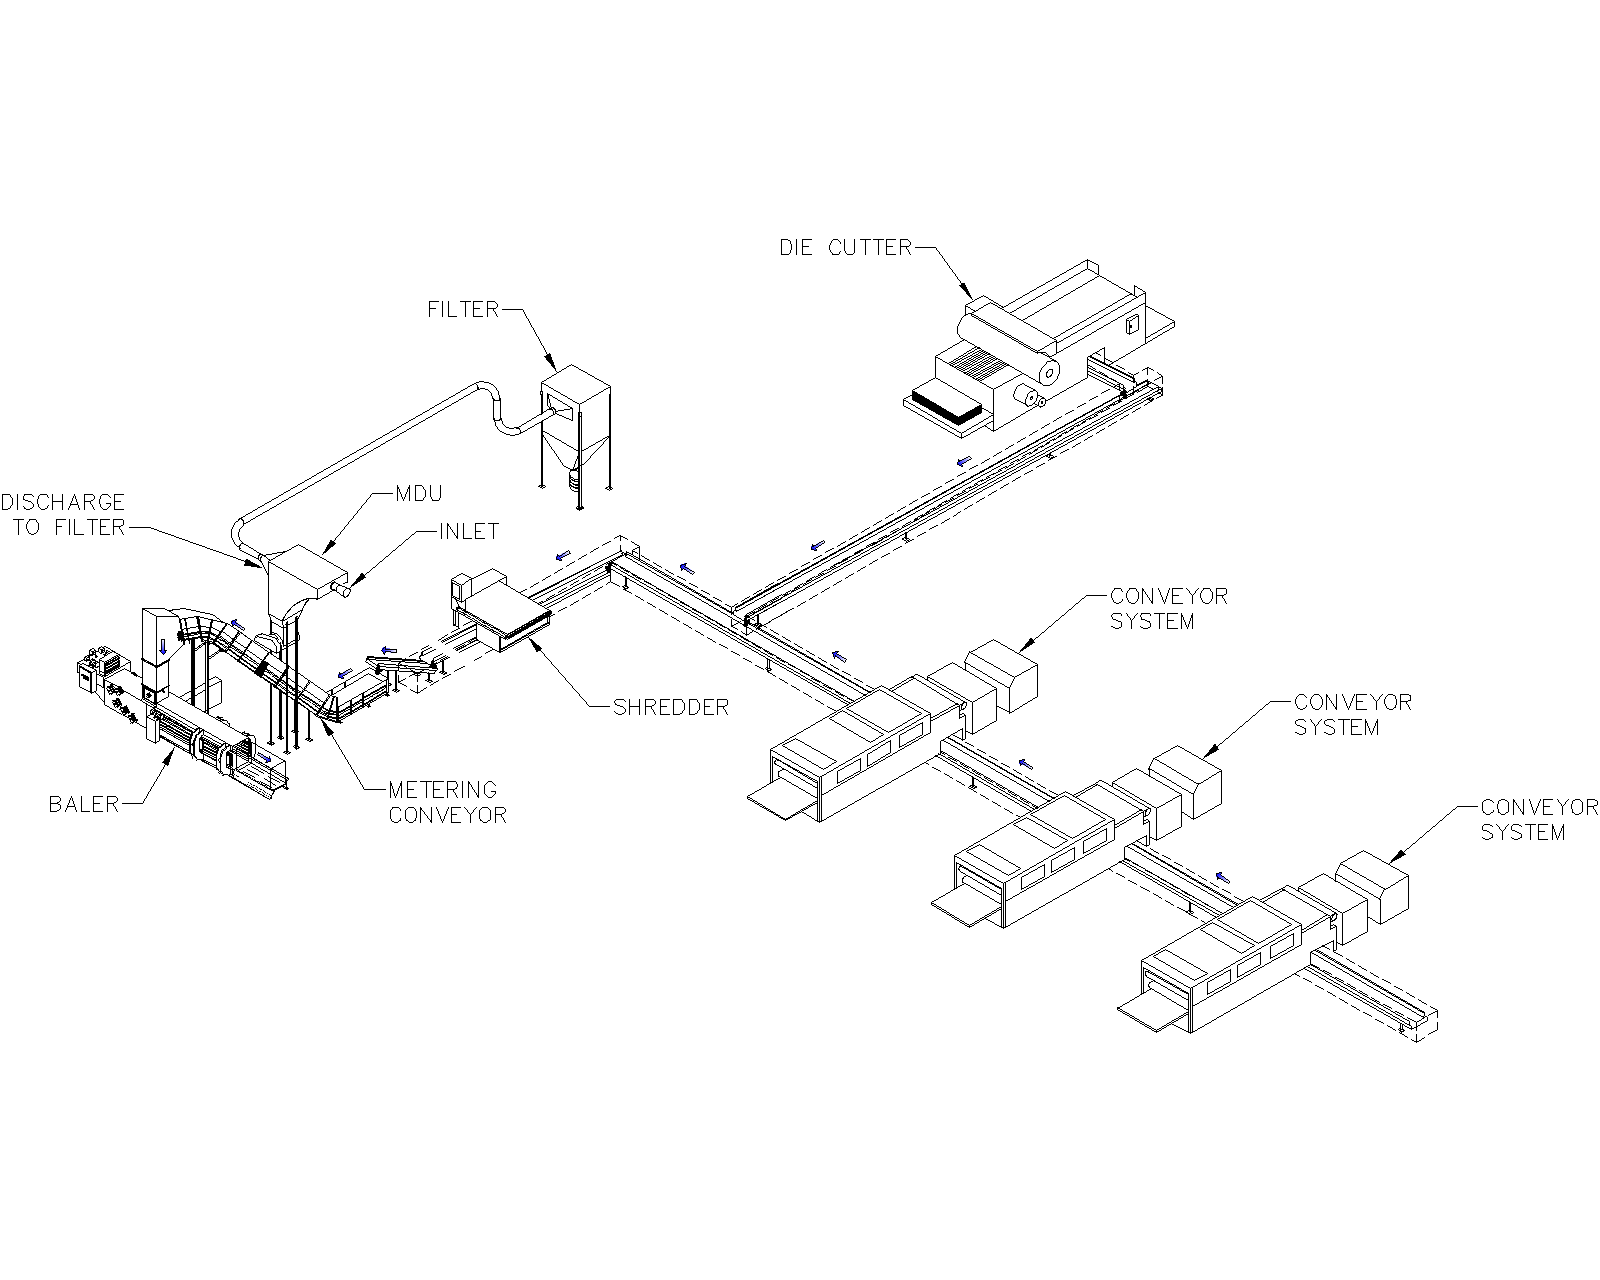 Conveyor and MDU System Illustration by Air Systems Design for the most efficient pneumatic conveying systems.